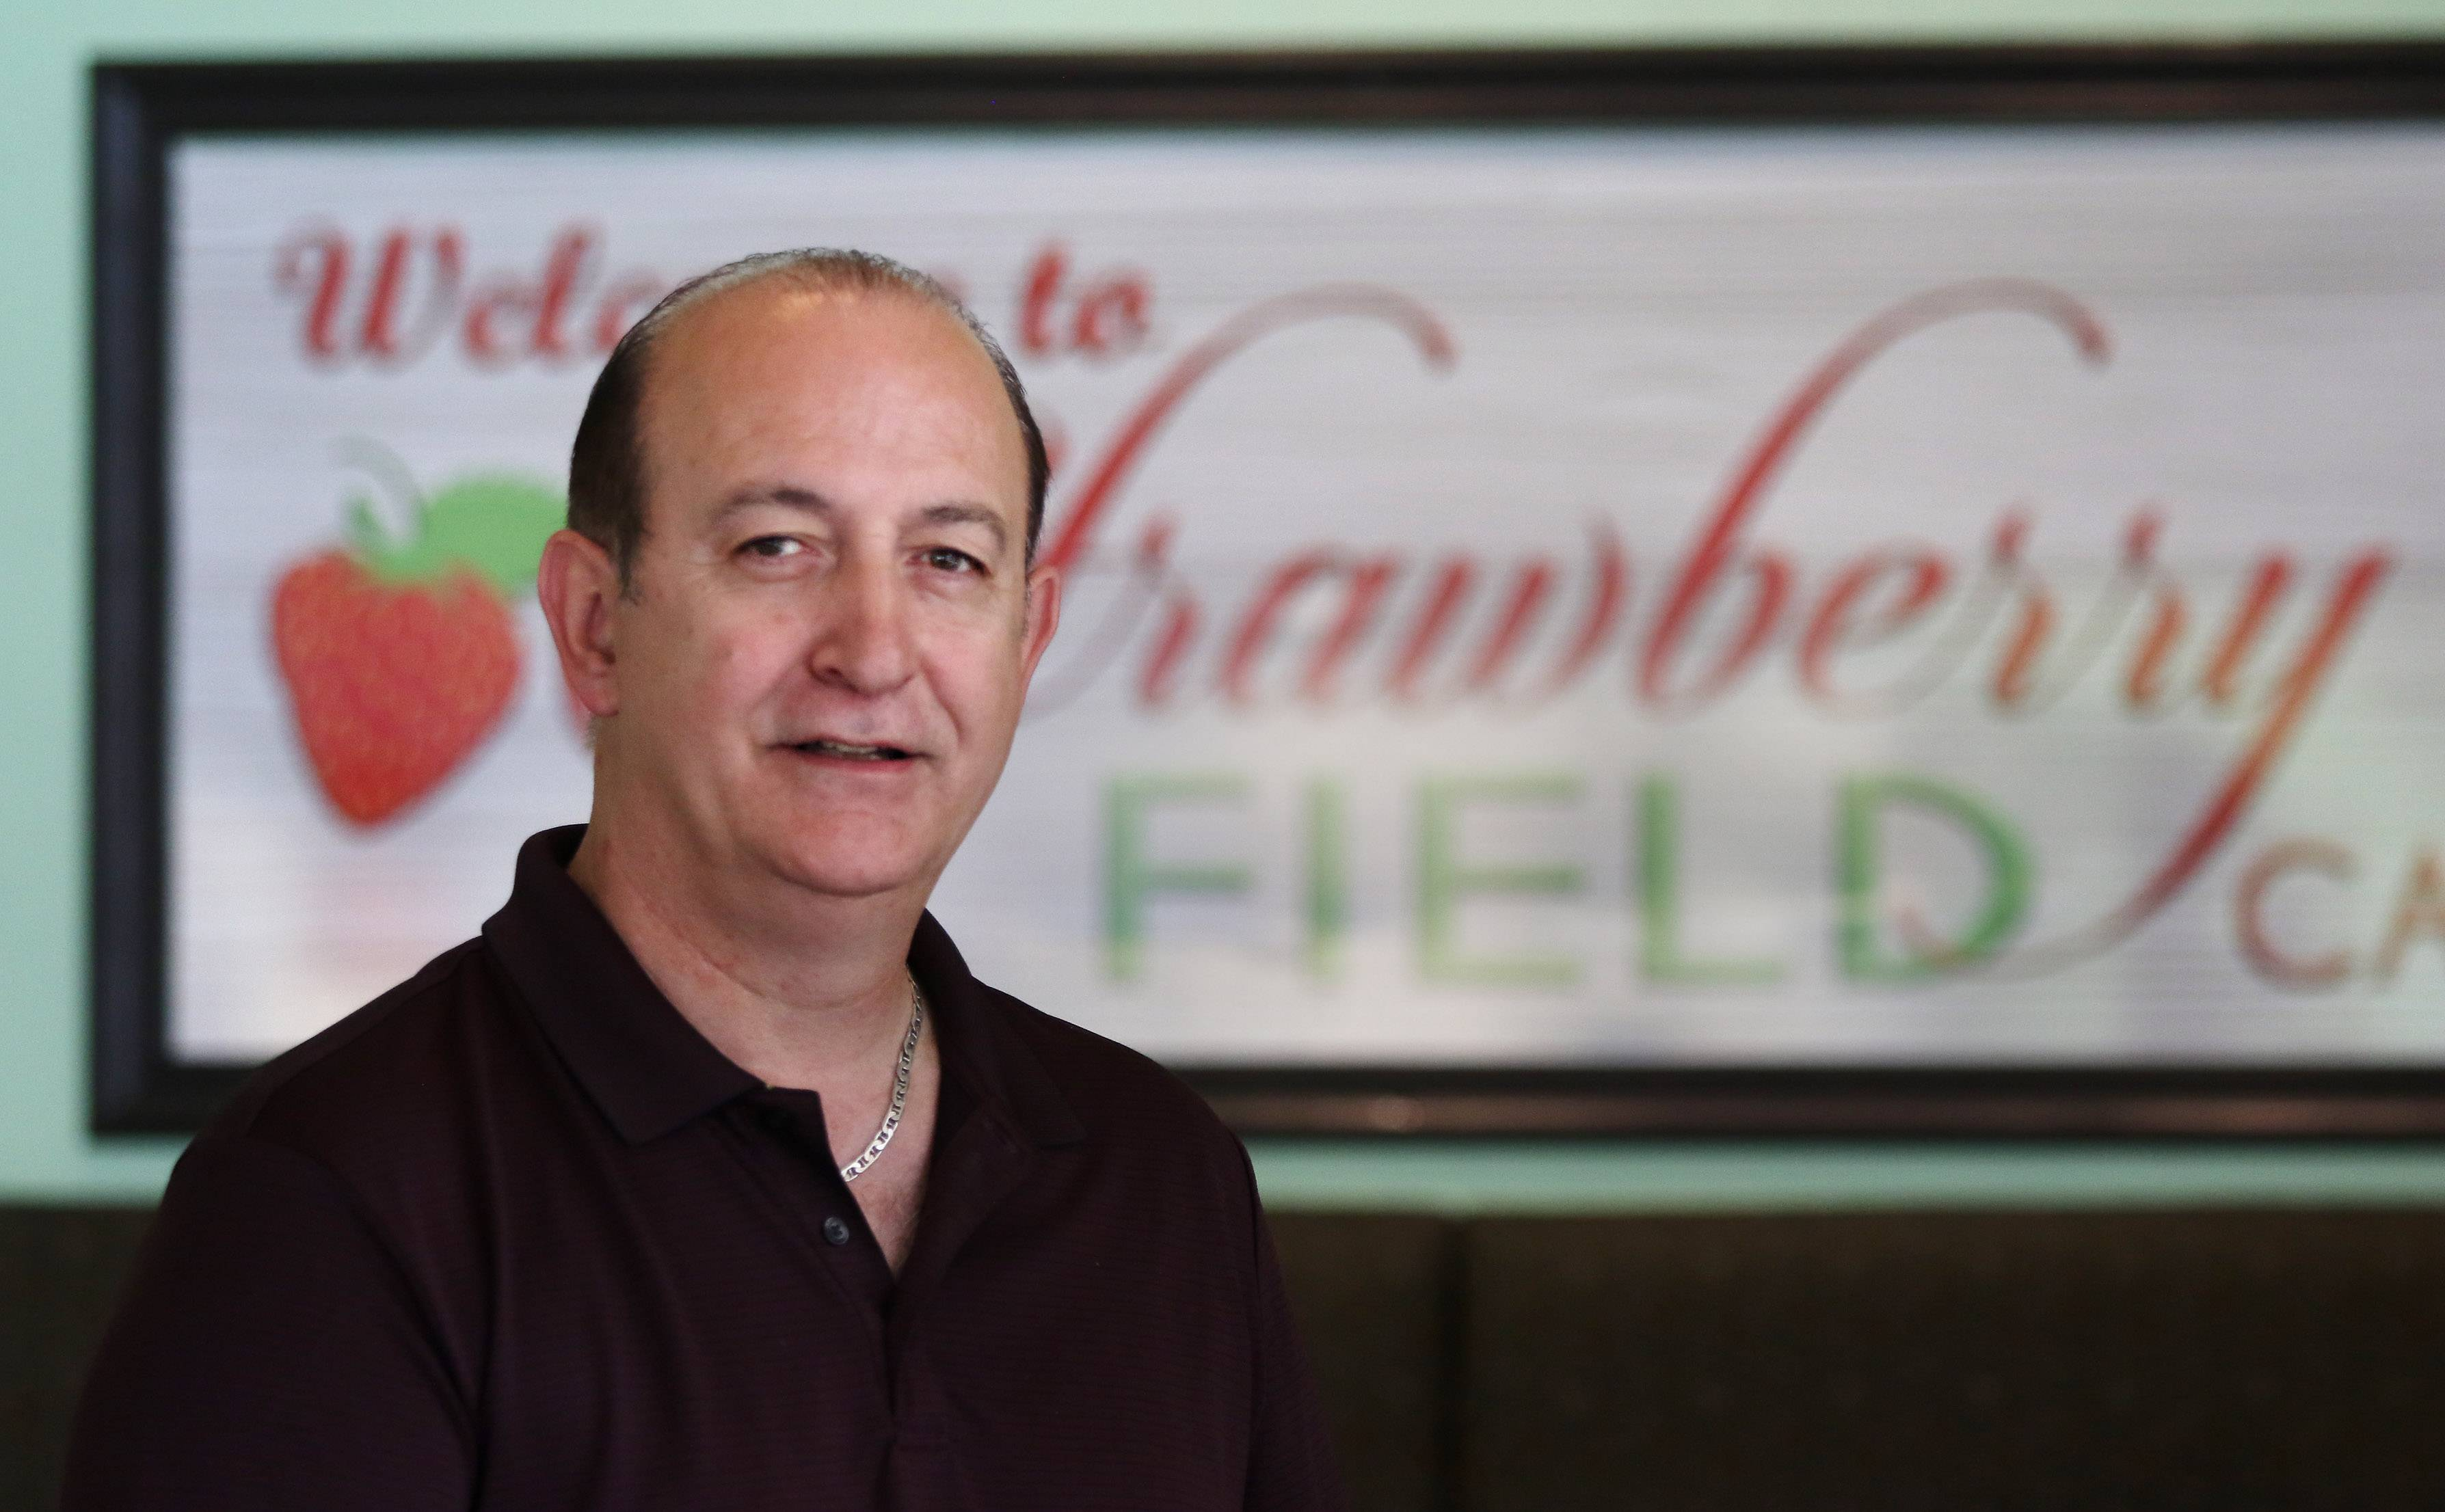 Gus Romas opened his first restaurant nearly 30 years ago. His latest eatery is Strawberry Field Pancake & Cafe in Lincolnshire.